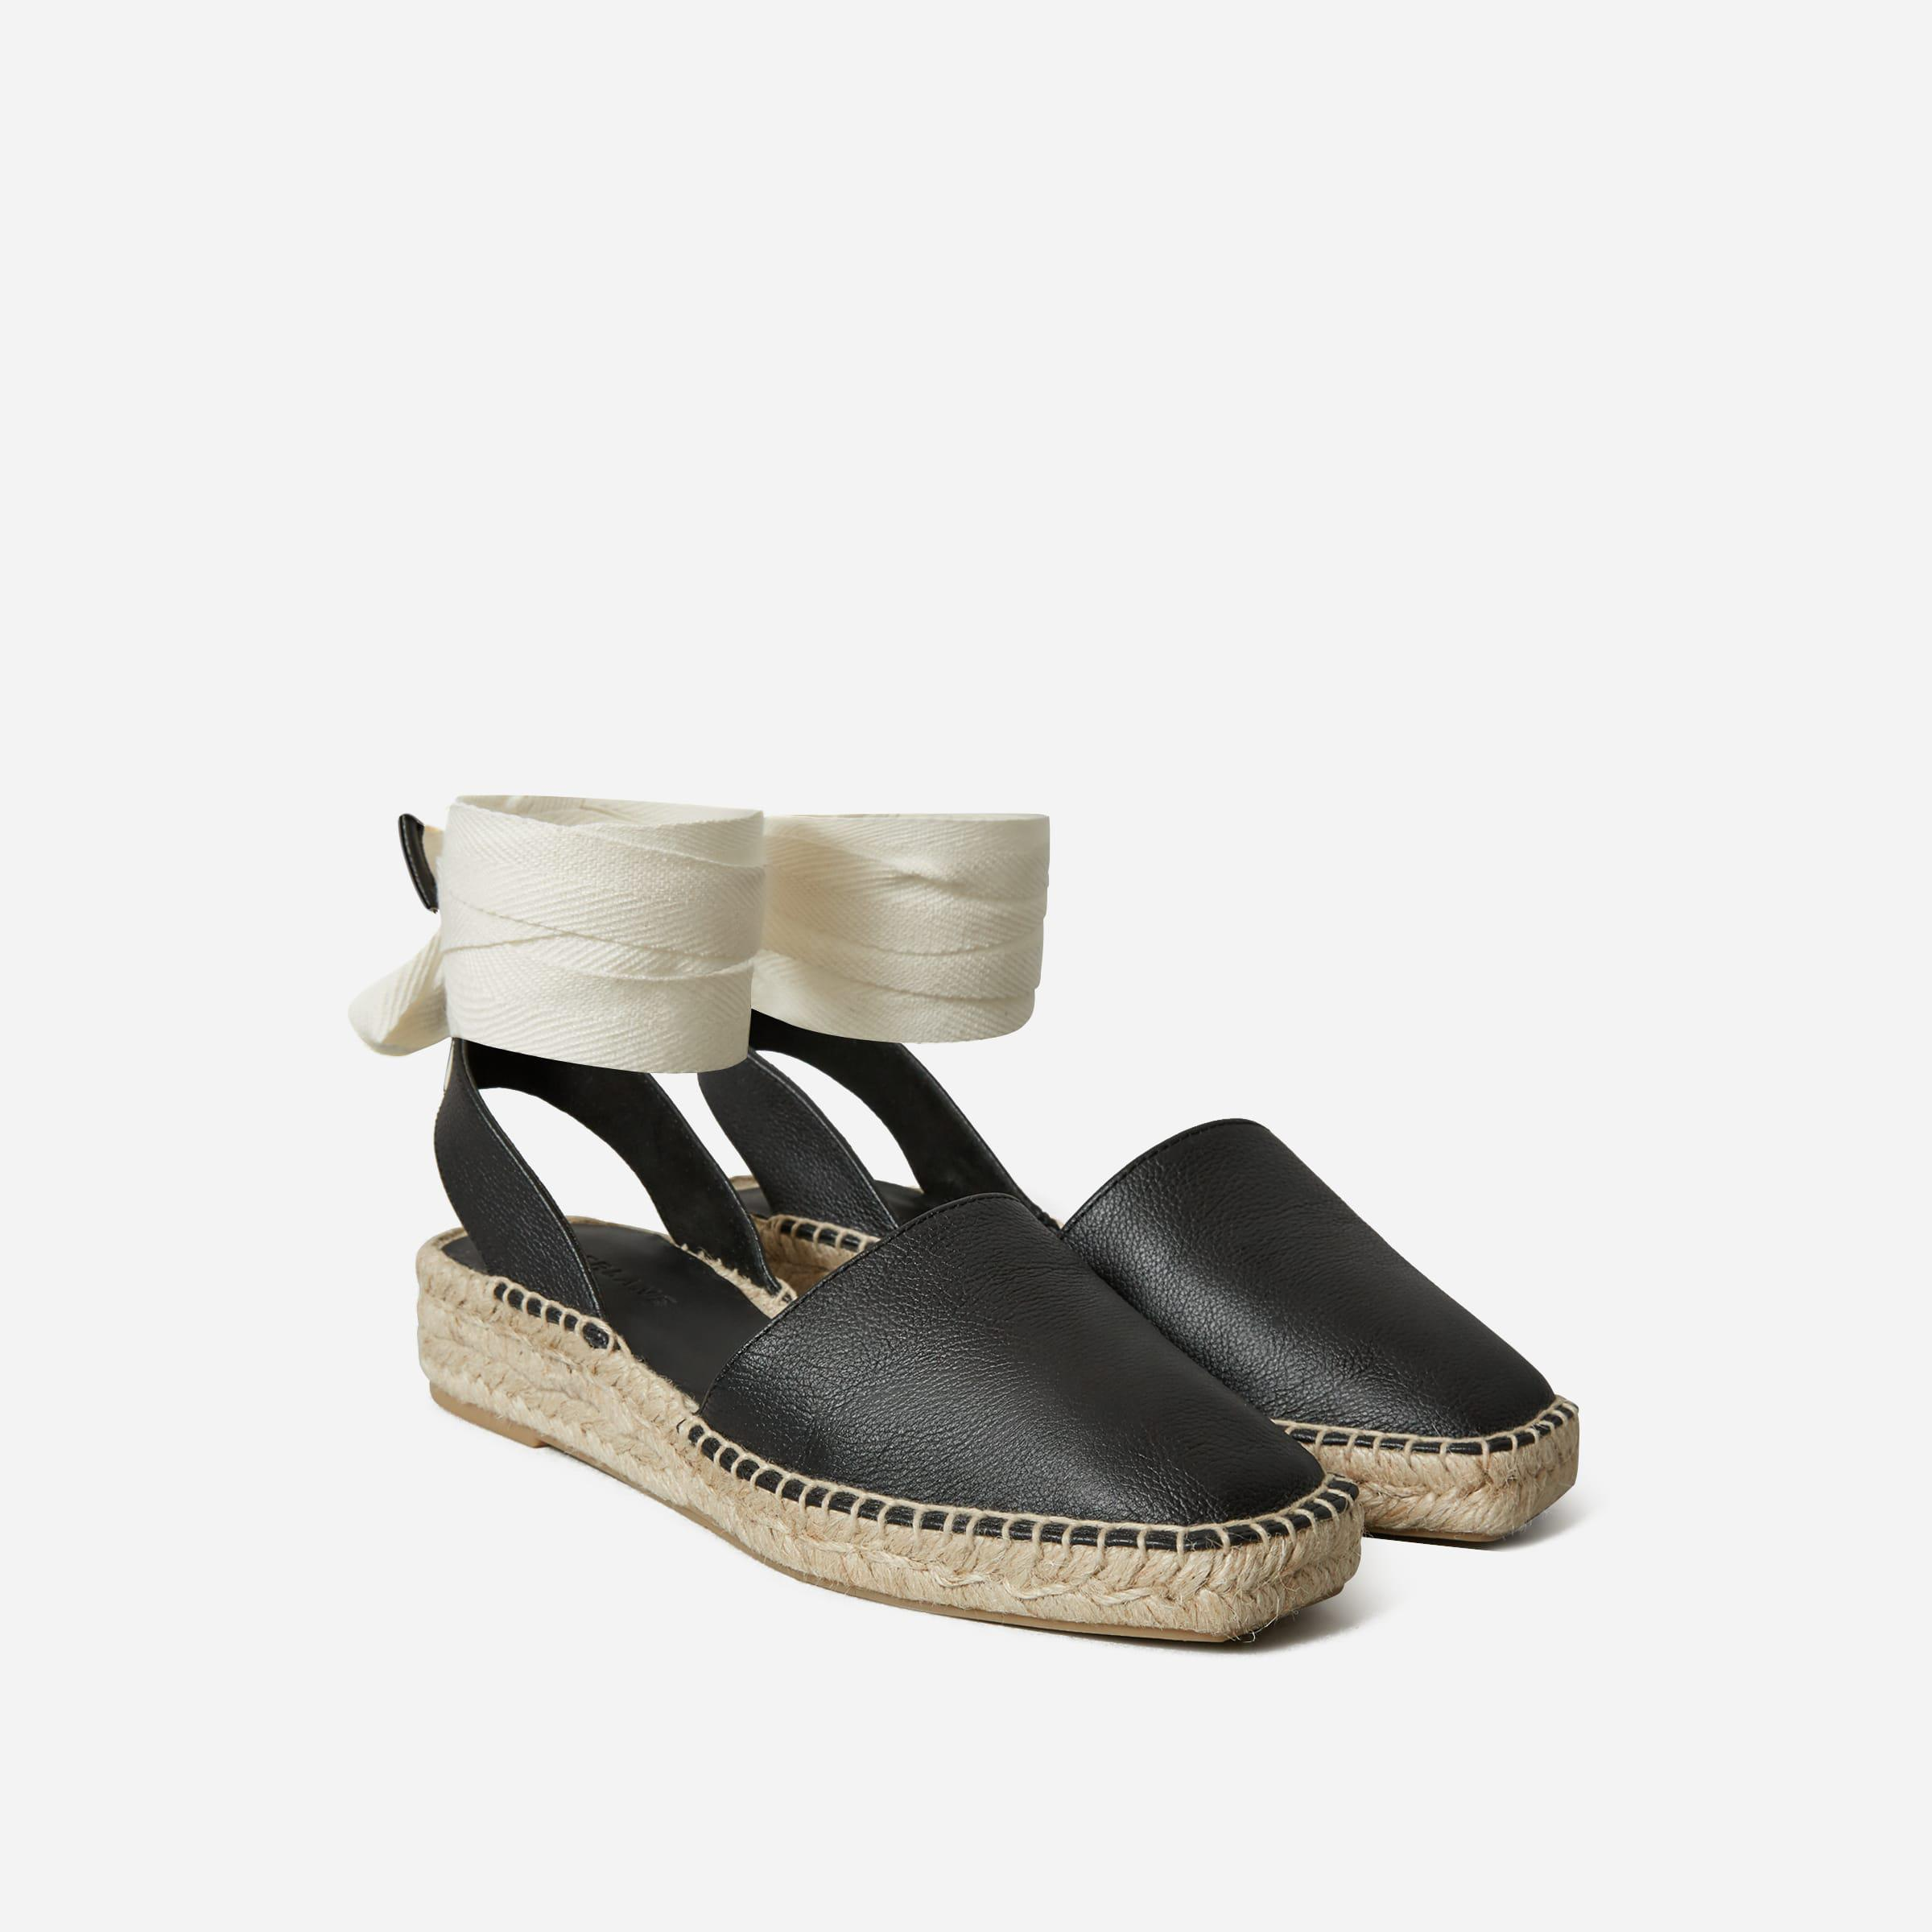 The D'orsay Espadrille 1